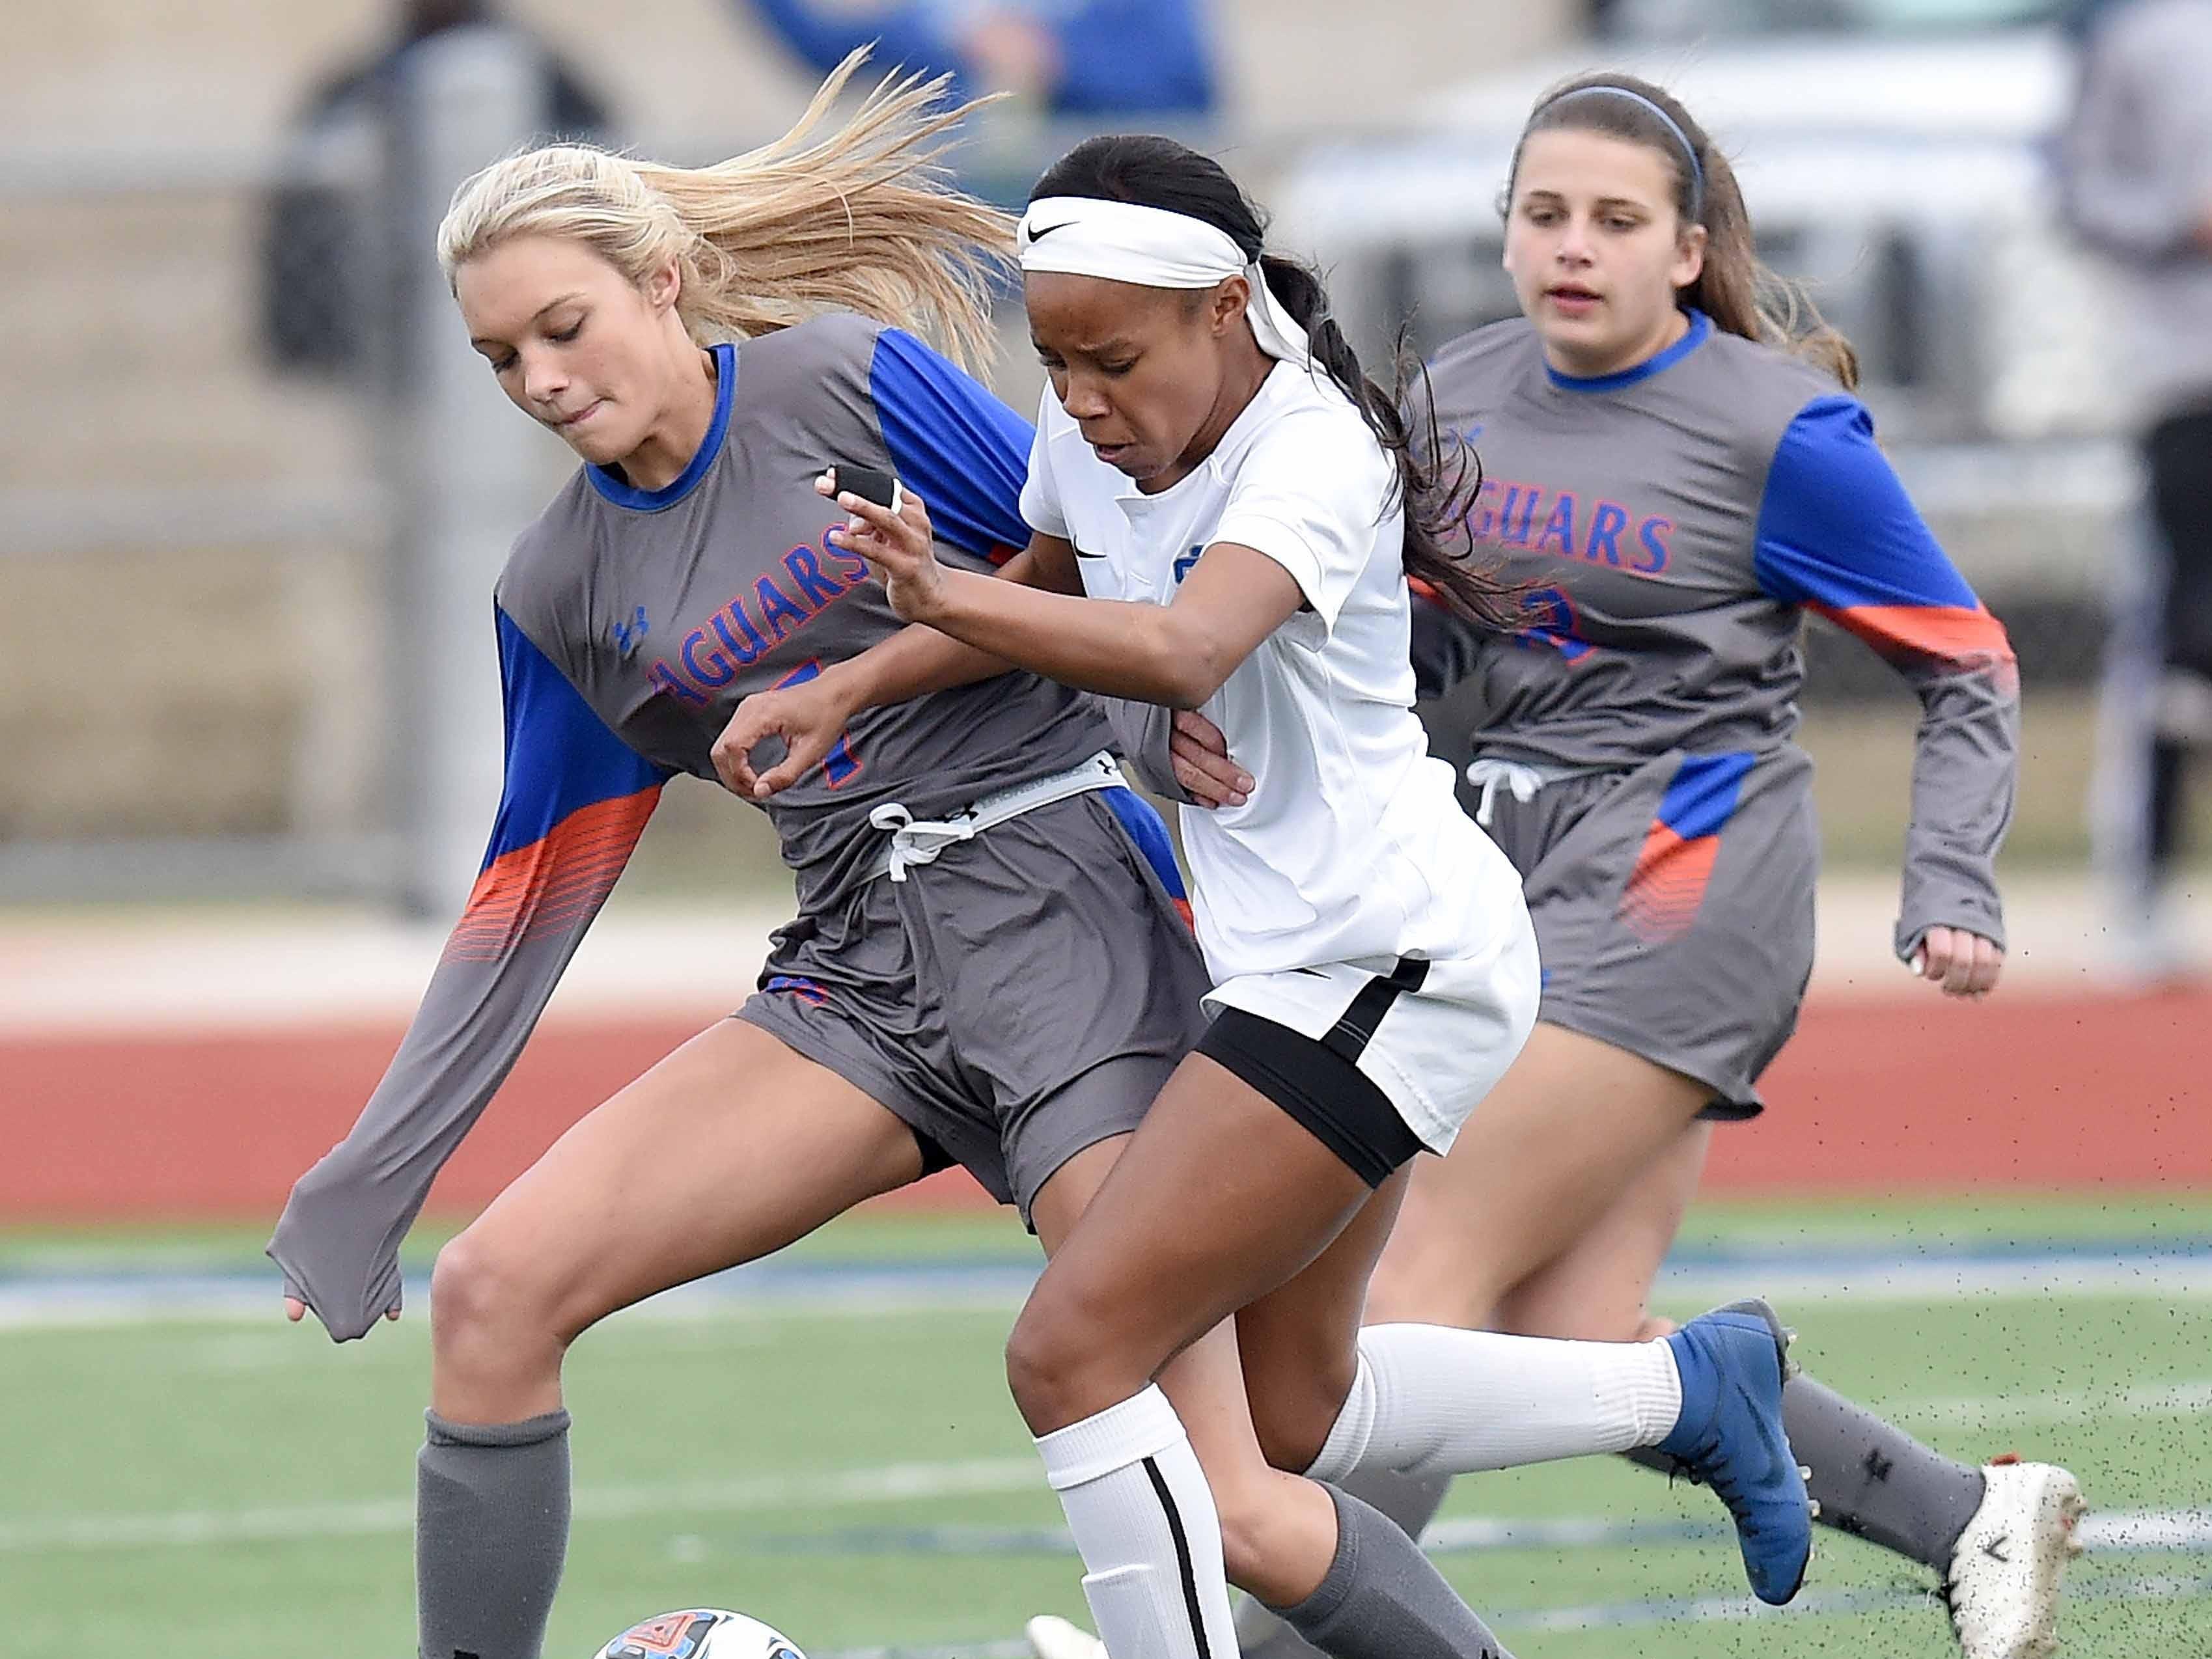 Madison Central's Caroline Parker (left) goes after the ball against Ocean Springs' Kinsley Harmon (2) in the Class 6A state championship in the MHSAA BlueCross Blue Shield of Mississippi Soccer Classic on Saturday, February 9, 2019, at Ridgeland High School in Ridgeland, Miss.